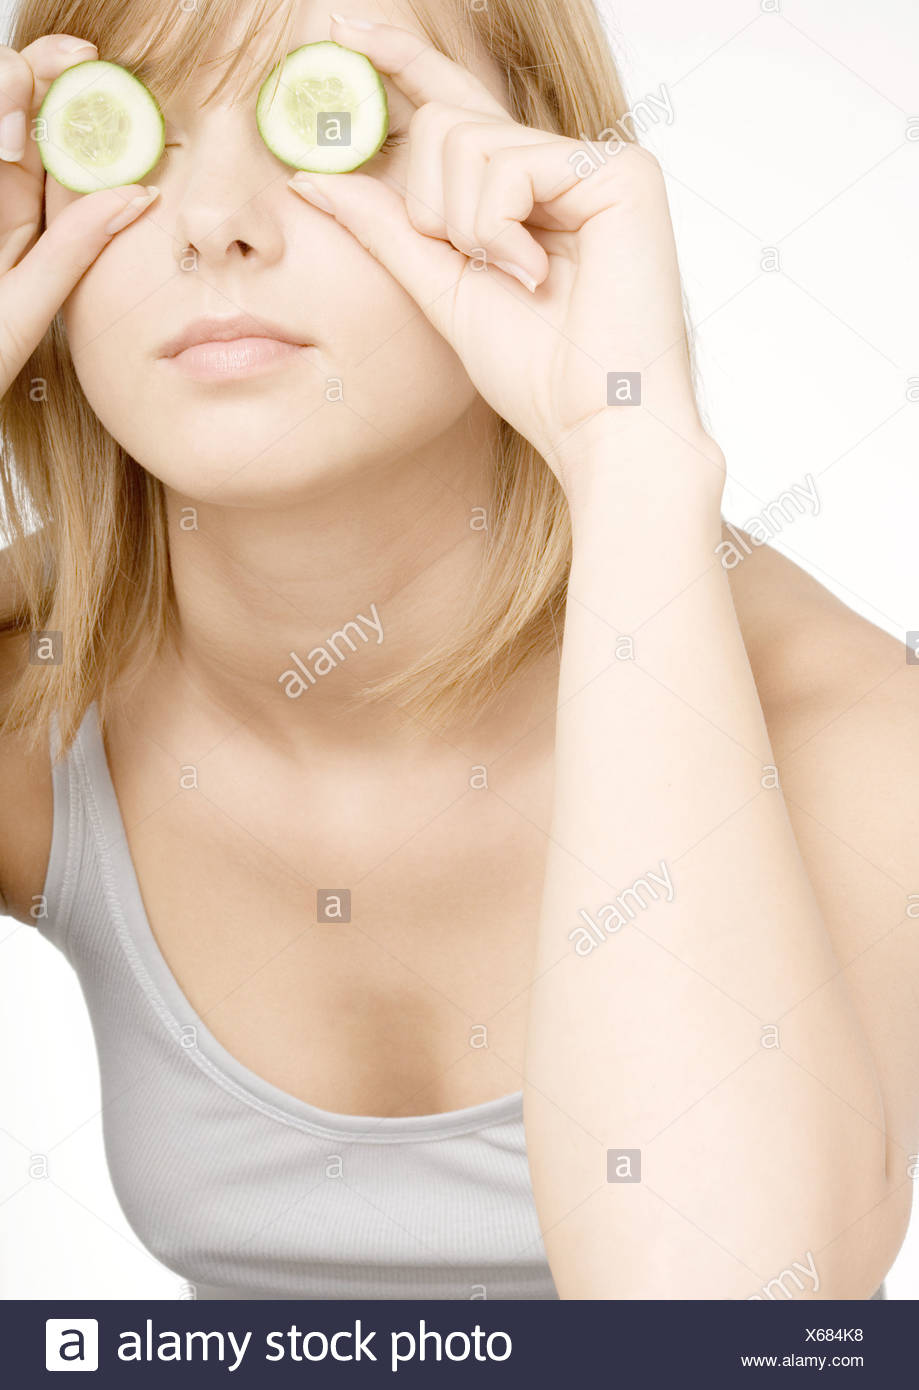 Young woman holding up cucumber slices in front of eyes - Stock Image